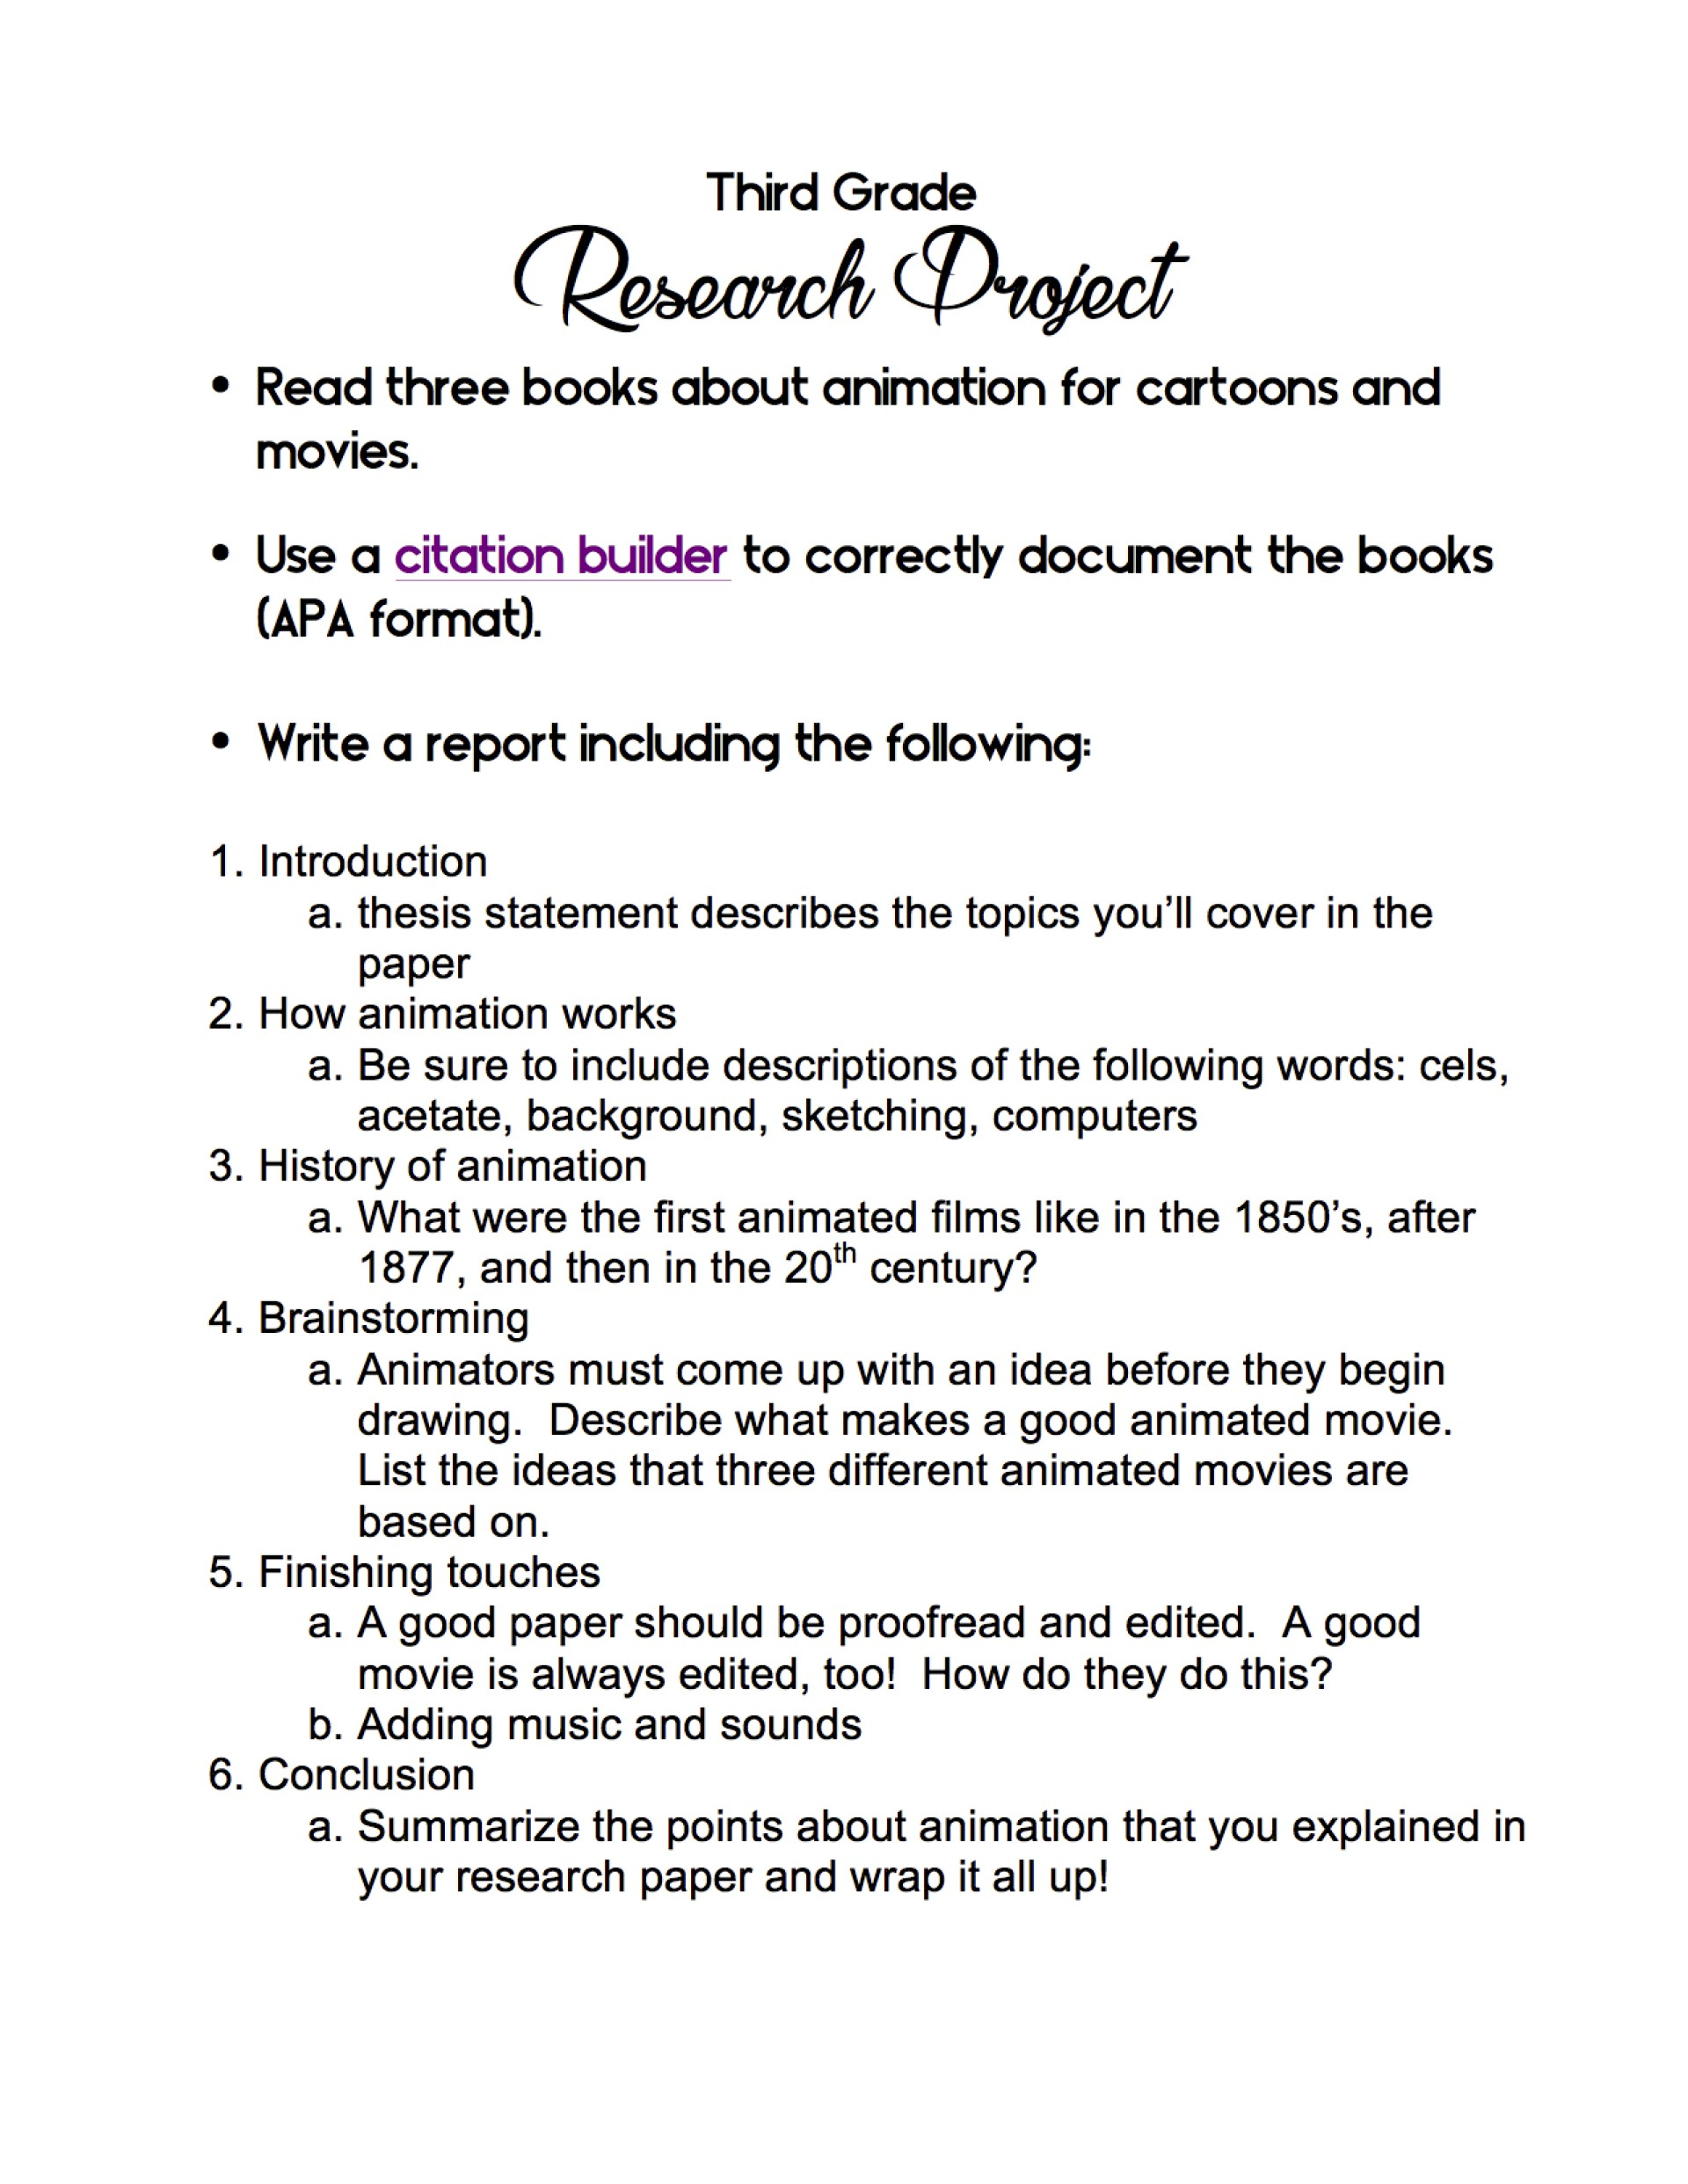 007 3rd Grade Research Project Cancer Paper Topic Surprising Ideas Breast 1920